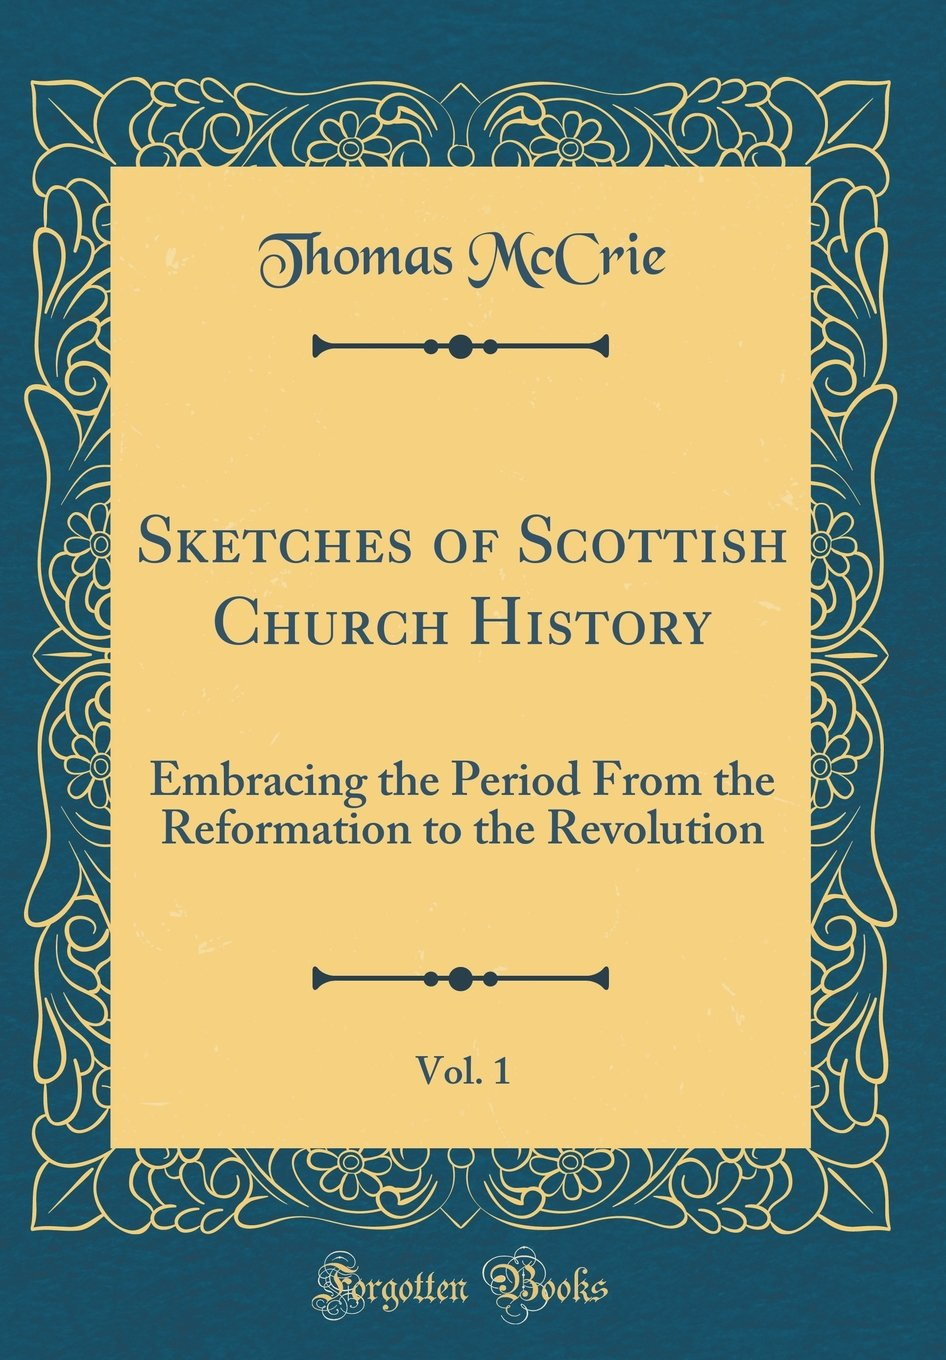 Sketches of Scottish Church History, Vol. 1: Embracing the Period From the Reformation to the Revolution (Classic Reprint) ebook